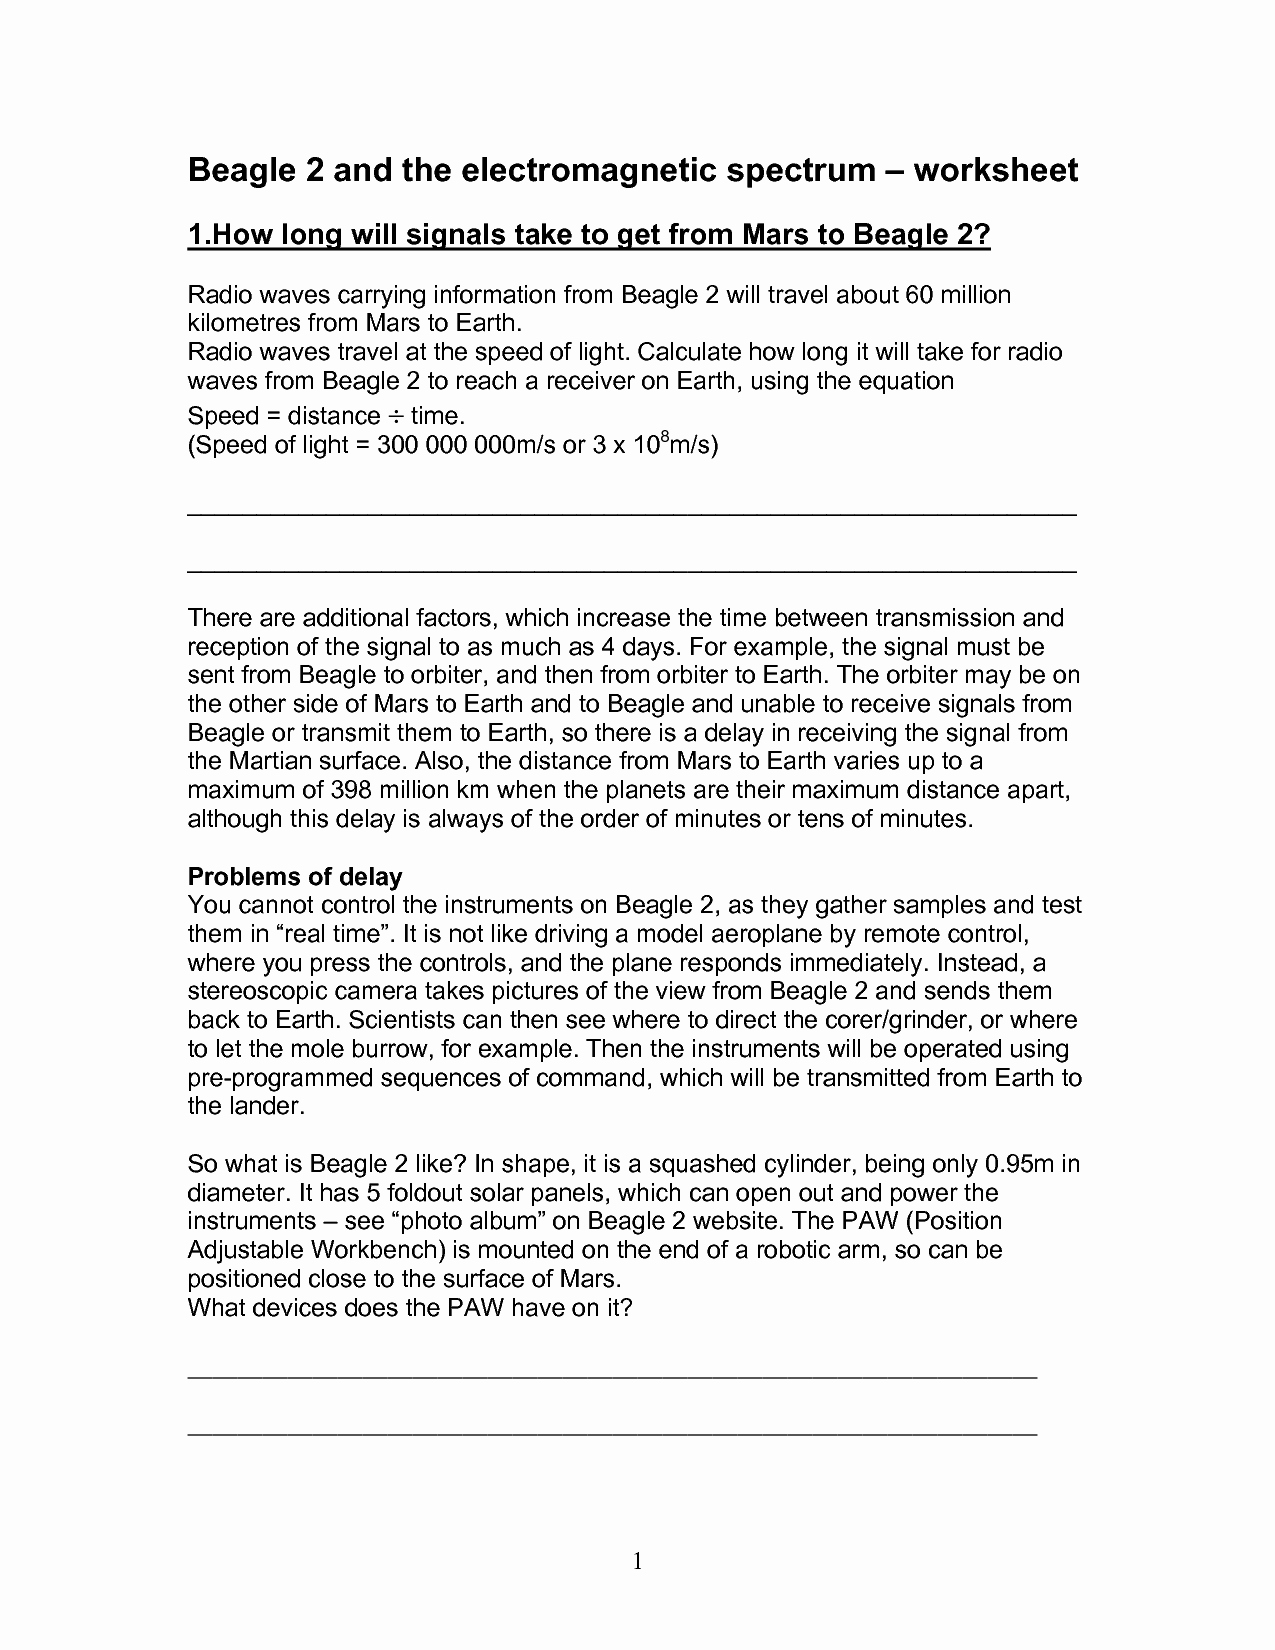 50 Electromagnetic Spectrum Worksheet High School